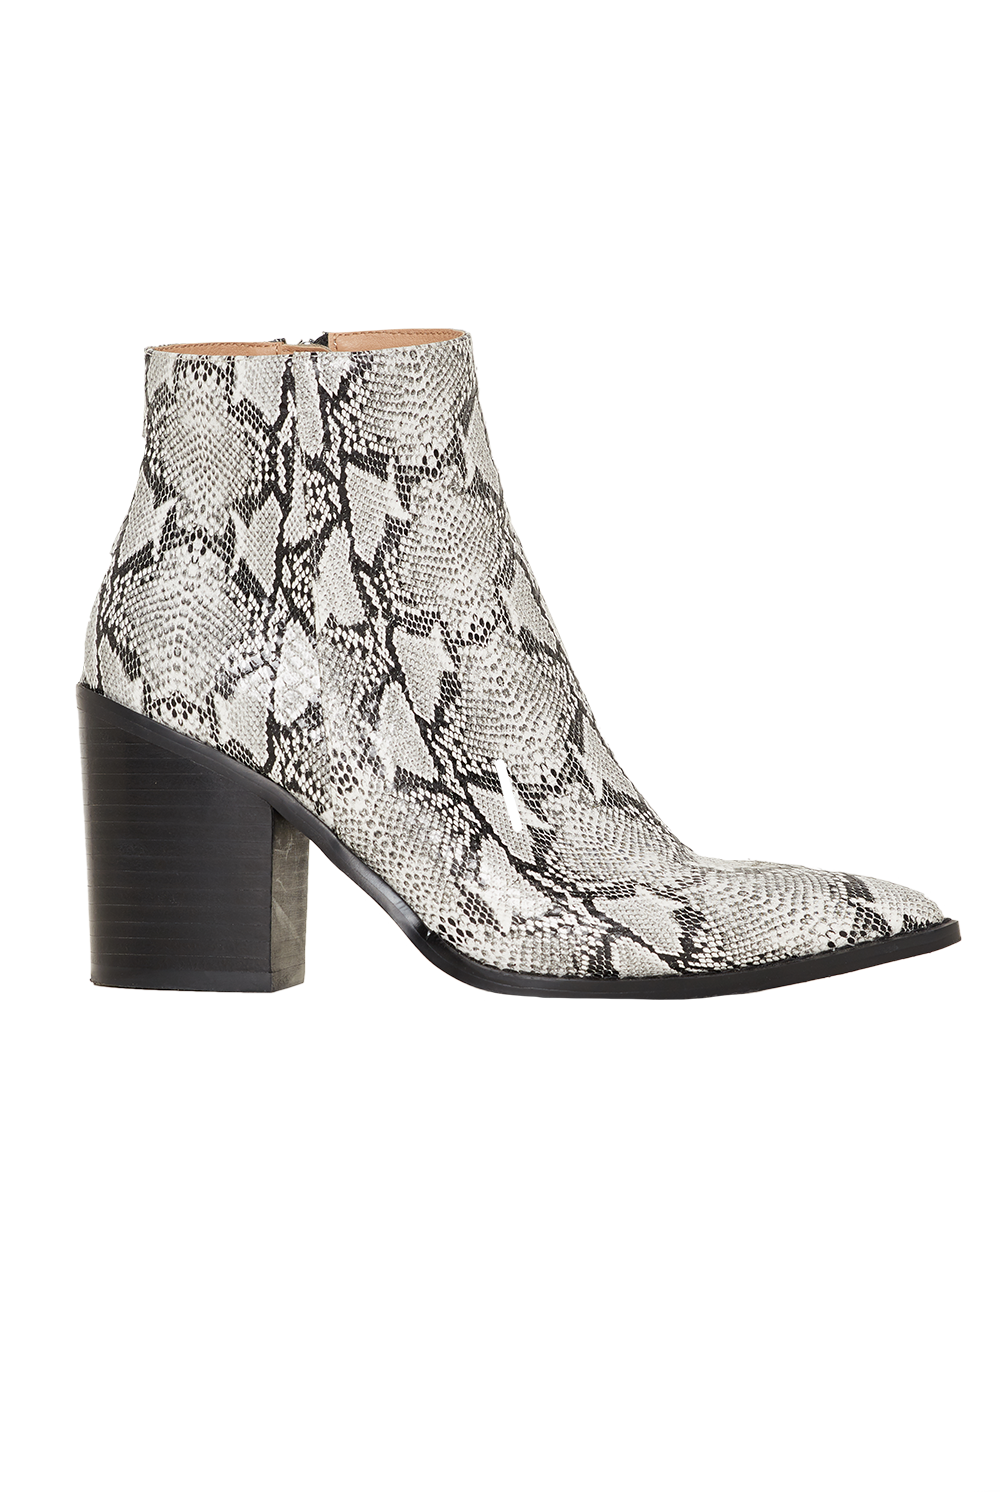 SNAKE POINT ANKLE BOOT in colour ANTELOPE